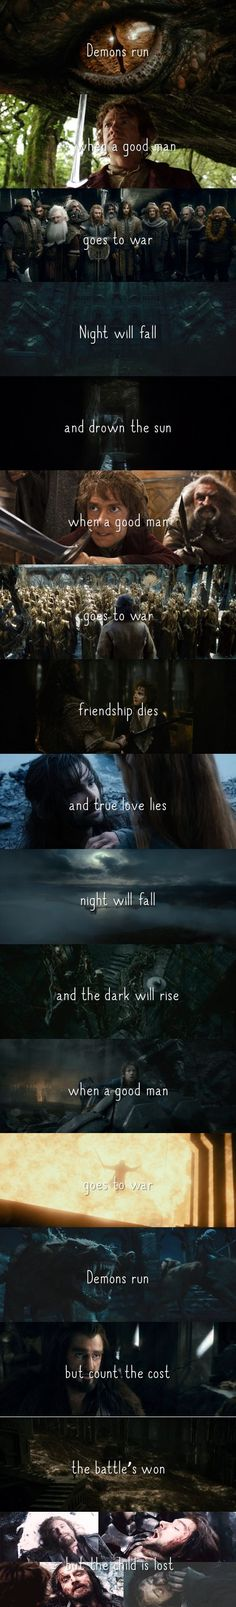 Demons run when a good man goes to war.>>>omg, that's the Doctor Who poem, mixed with The Hobbit. What could be better?